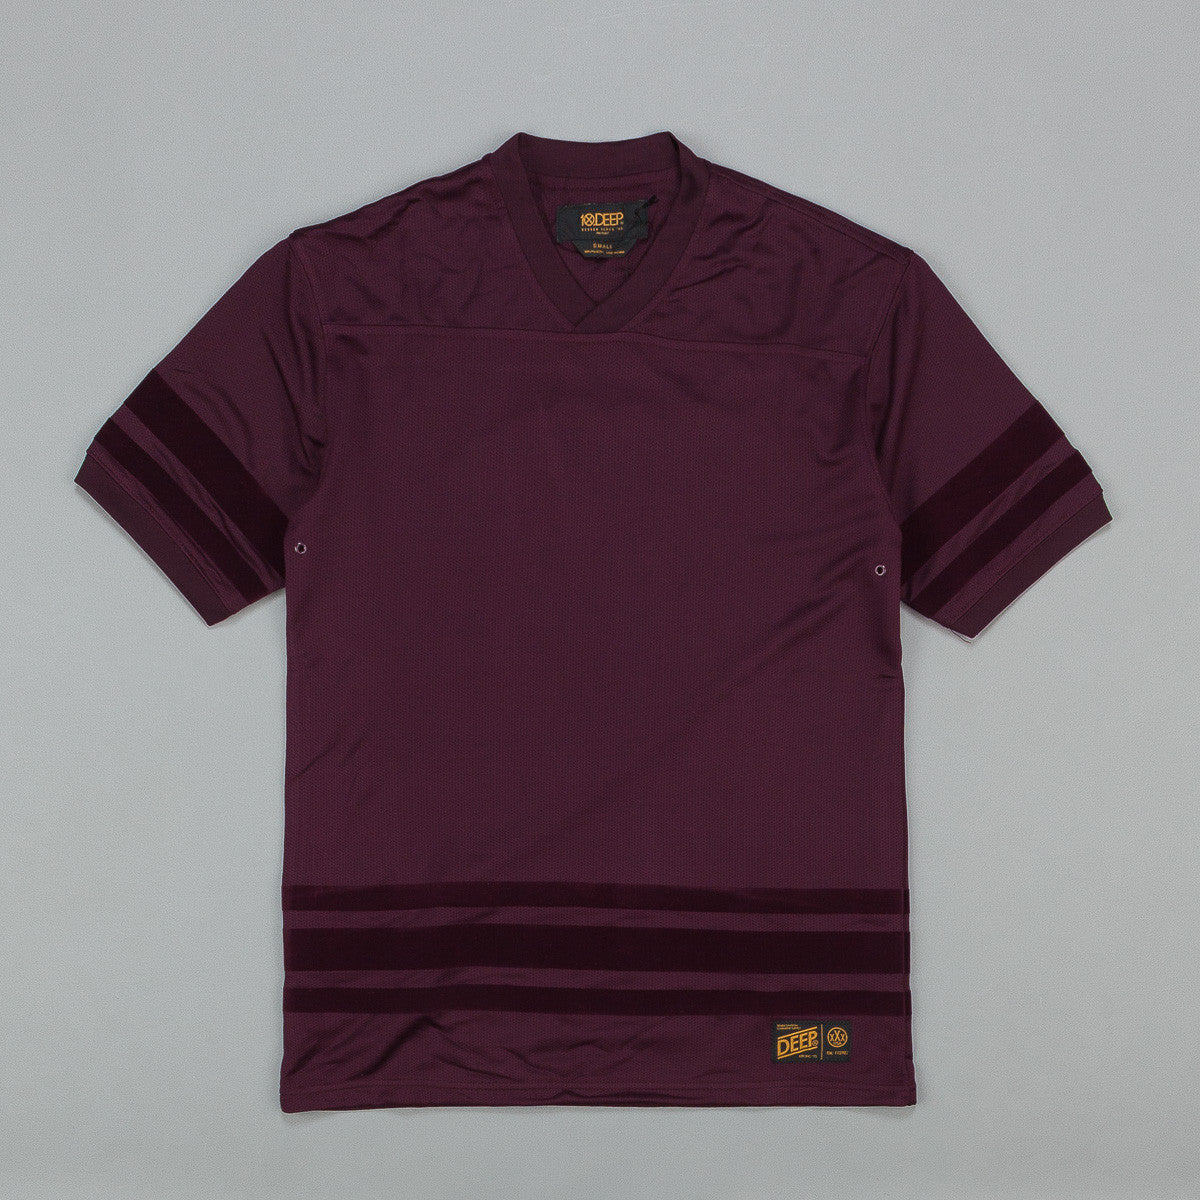 10.Deep Zip Drive Mesh Football Jersey Burgundy